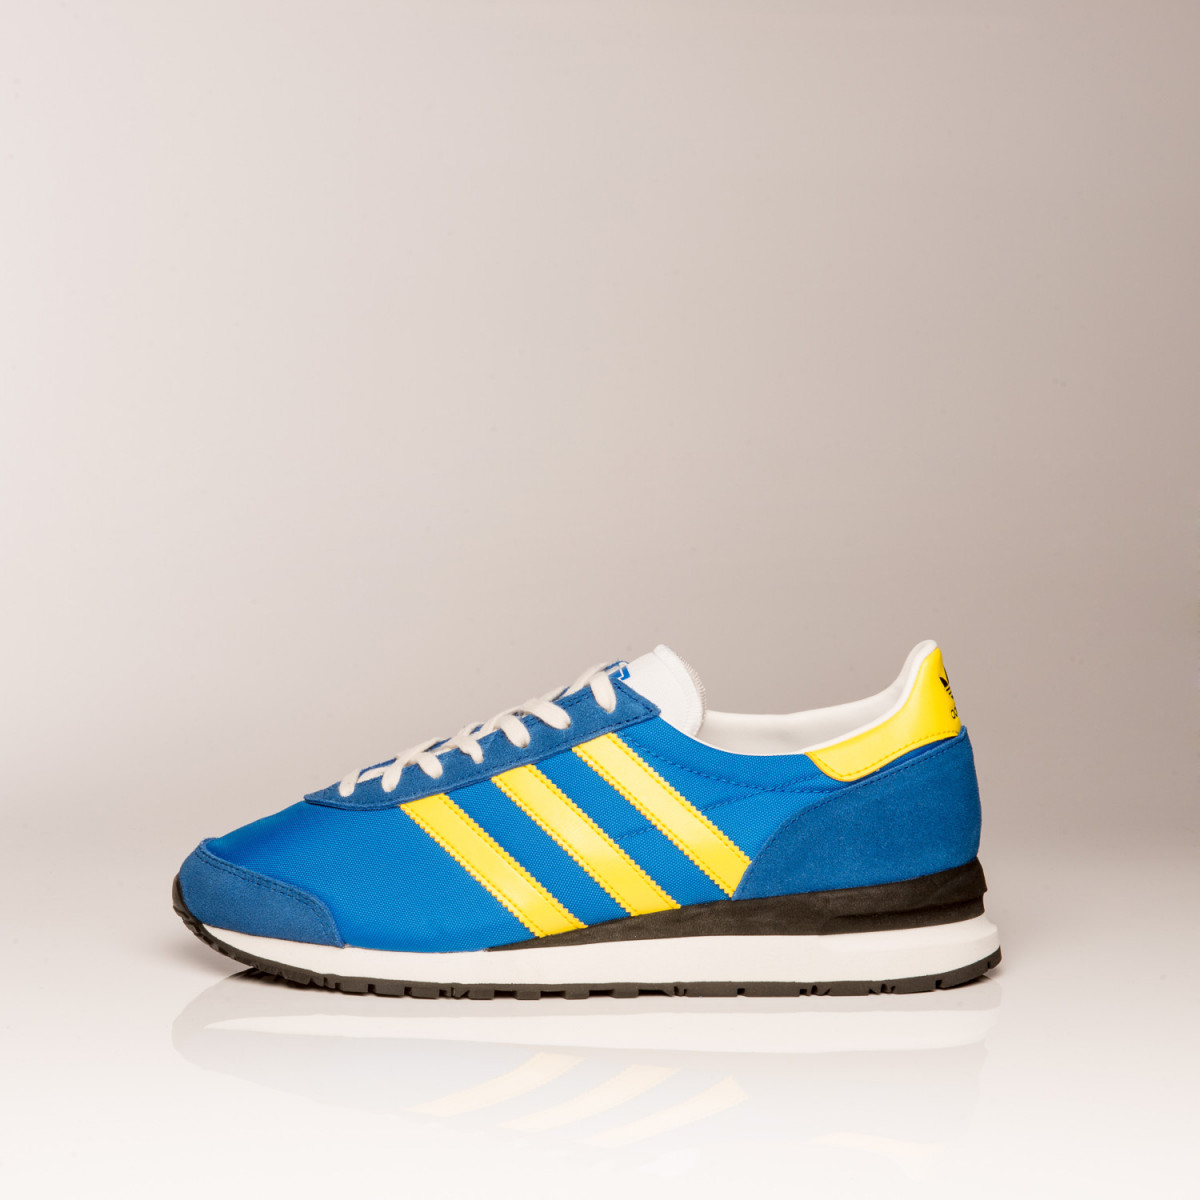 ZAPATILLAS ADIDAS ORIGINALS MARATHON 85